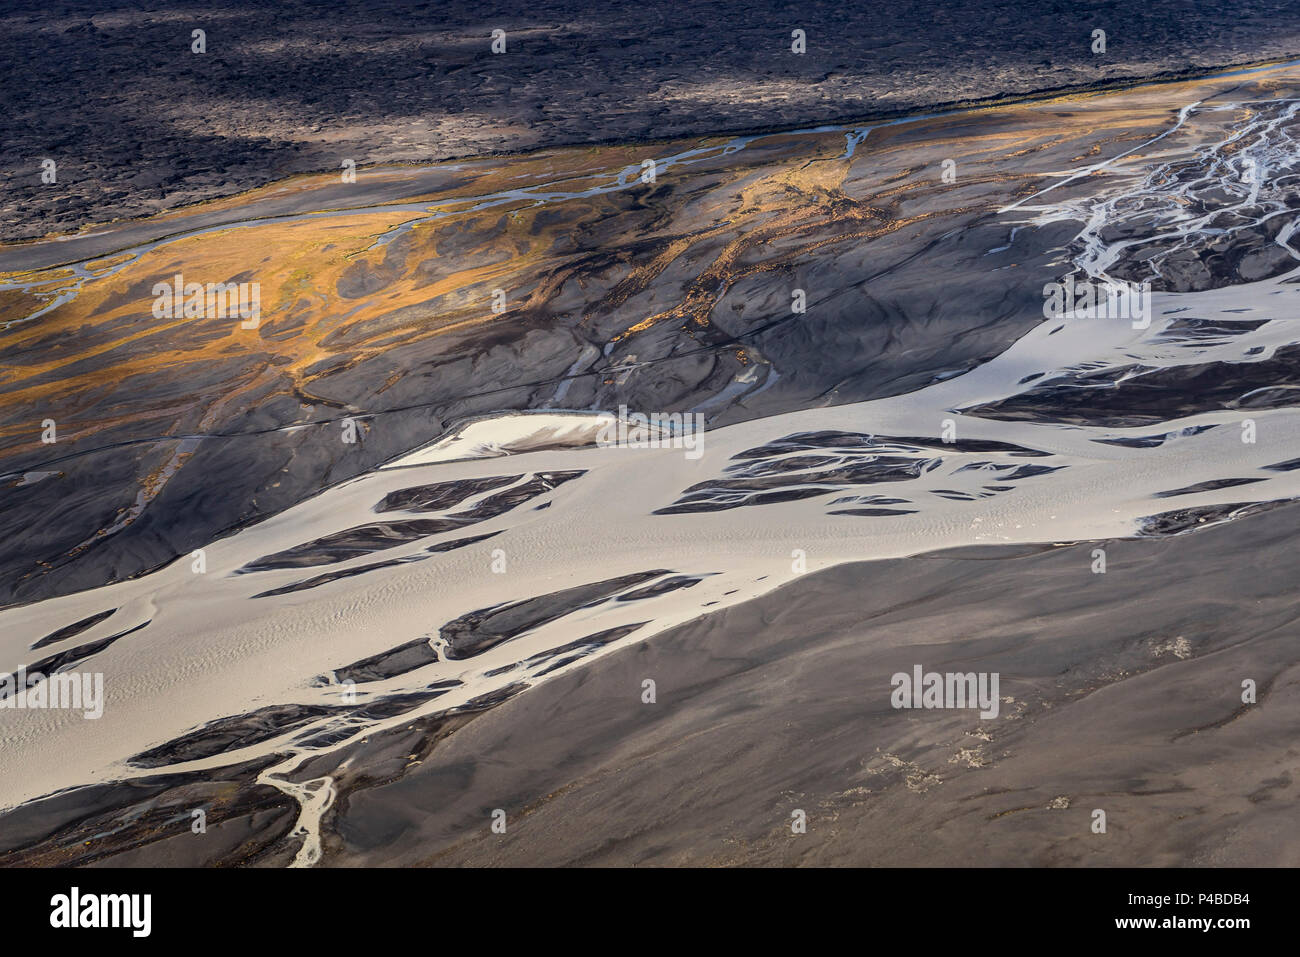 Aerial view- Jokulsa a Fjollum a glacier river, Krepputunga, North of Vatnajokull, Iceland Sands and lava close to the eruption site at Holuhran. On August 29, 2014 a fissure eruption started in Holuhraun at the northern end of a magma intrusion, which had moved progressively north, from the Bardarbunga volcano. Picture Date-Sept. 3, 2014 - Stock Image